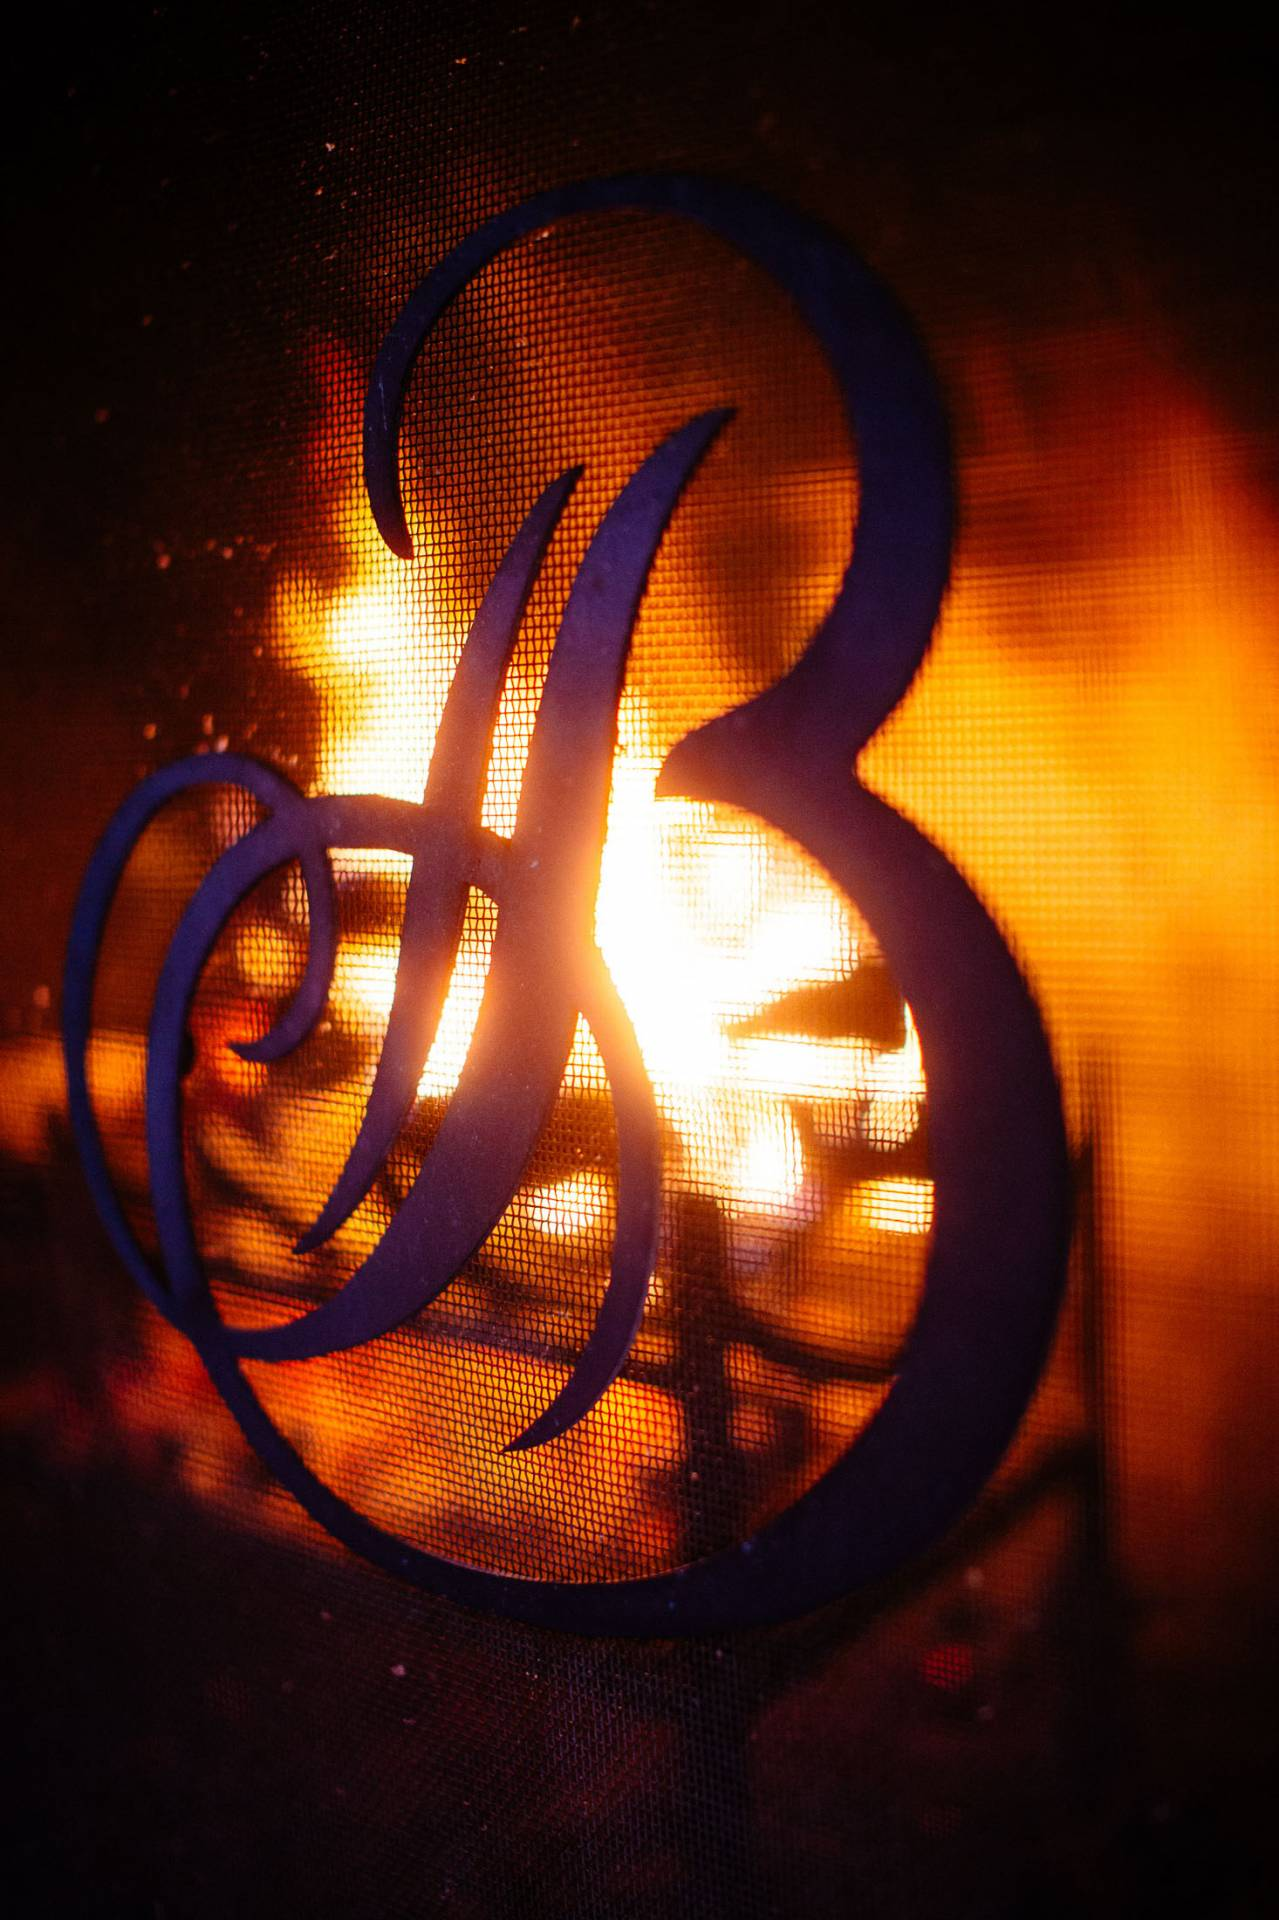 Fireplace with flames and the letter B logo from The Broadmoor at the Cheyenne Lodge.